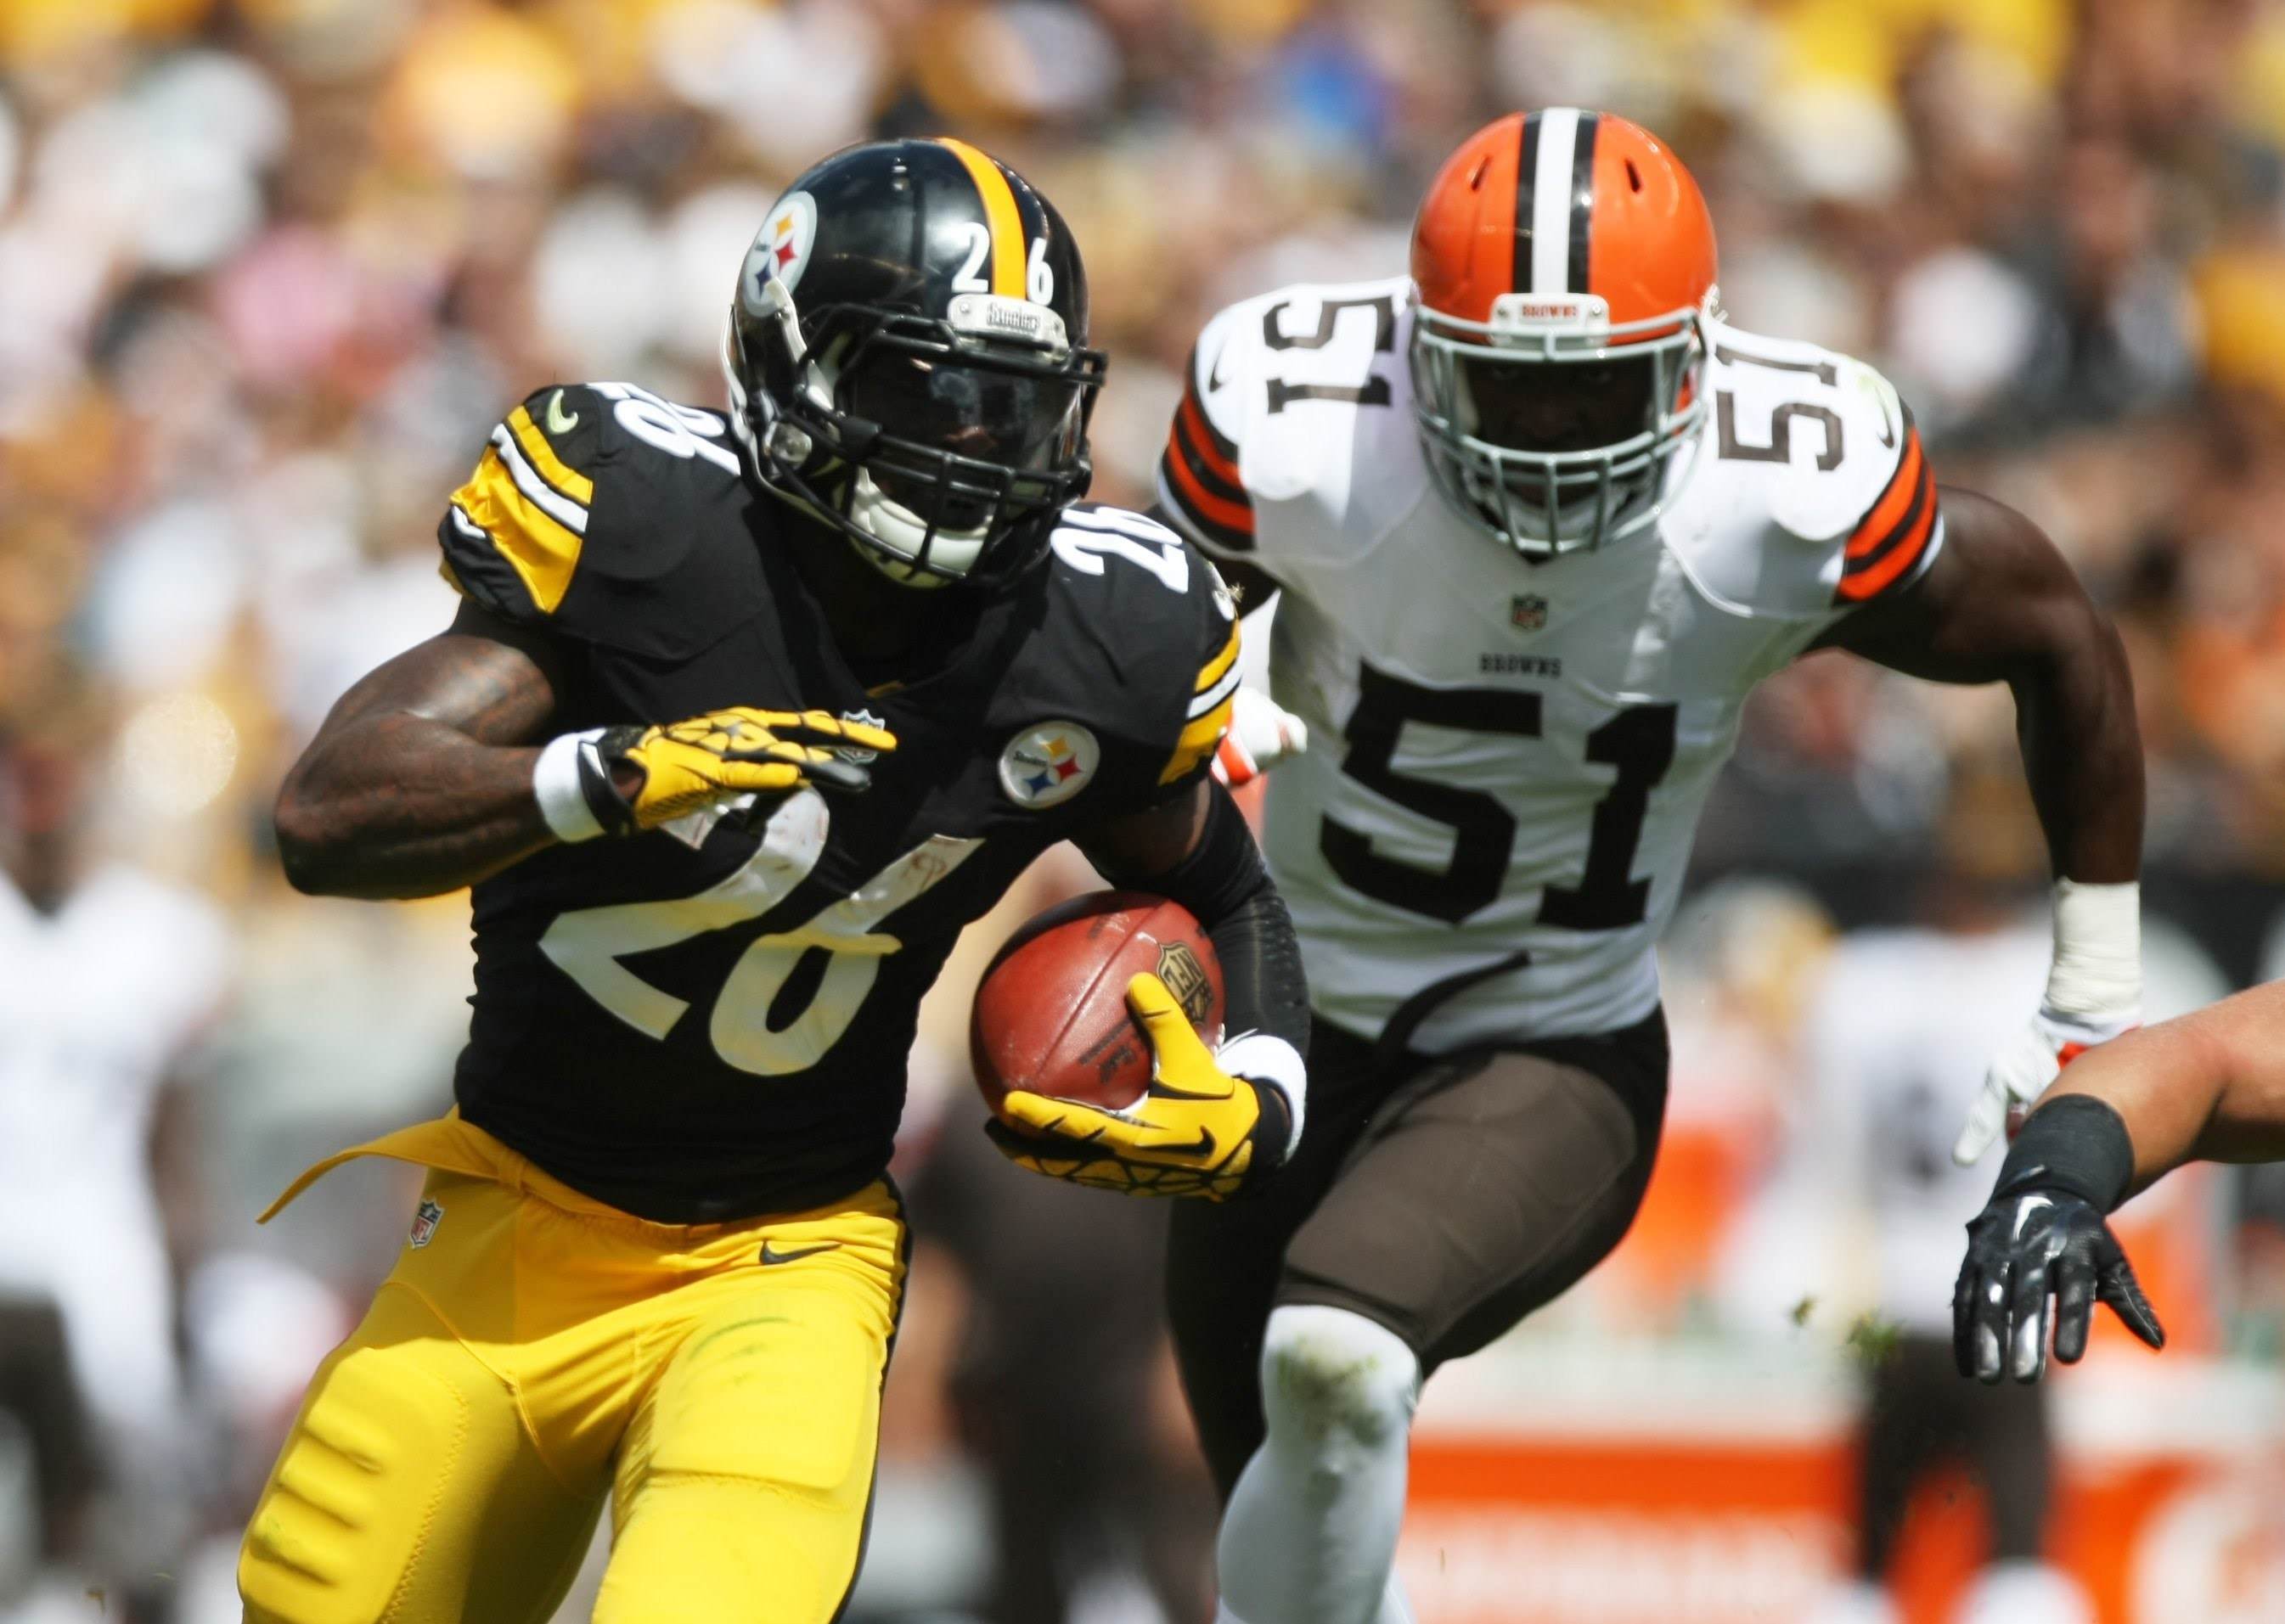 Le'Veon Bell Breaks Ankles on 38 yd TD run against the Browns – YouTube